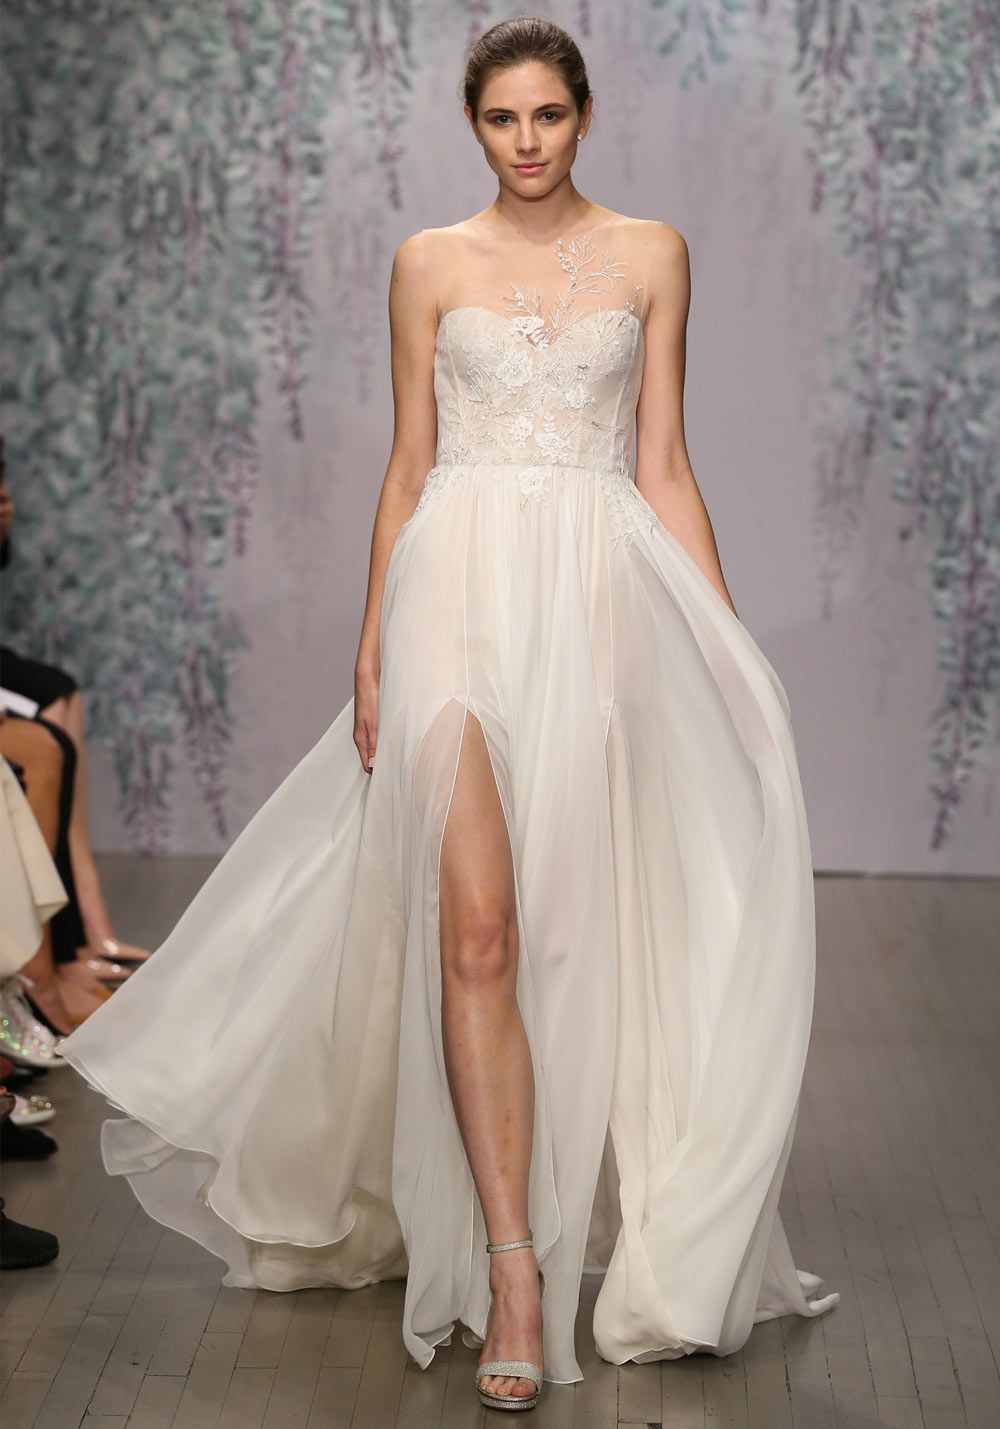 Figure Flattering Wedding Dresses for Every Type of Body Shape ...